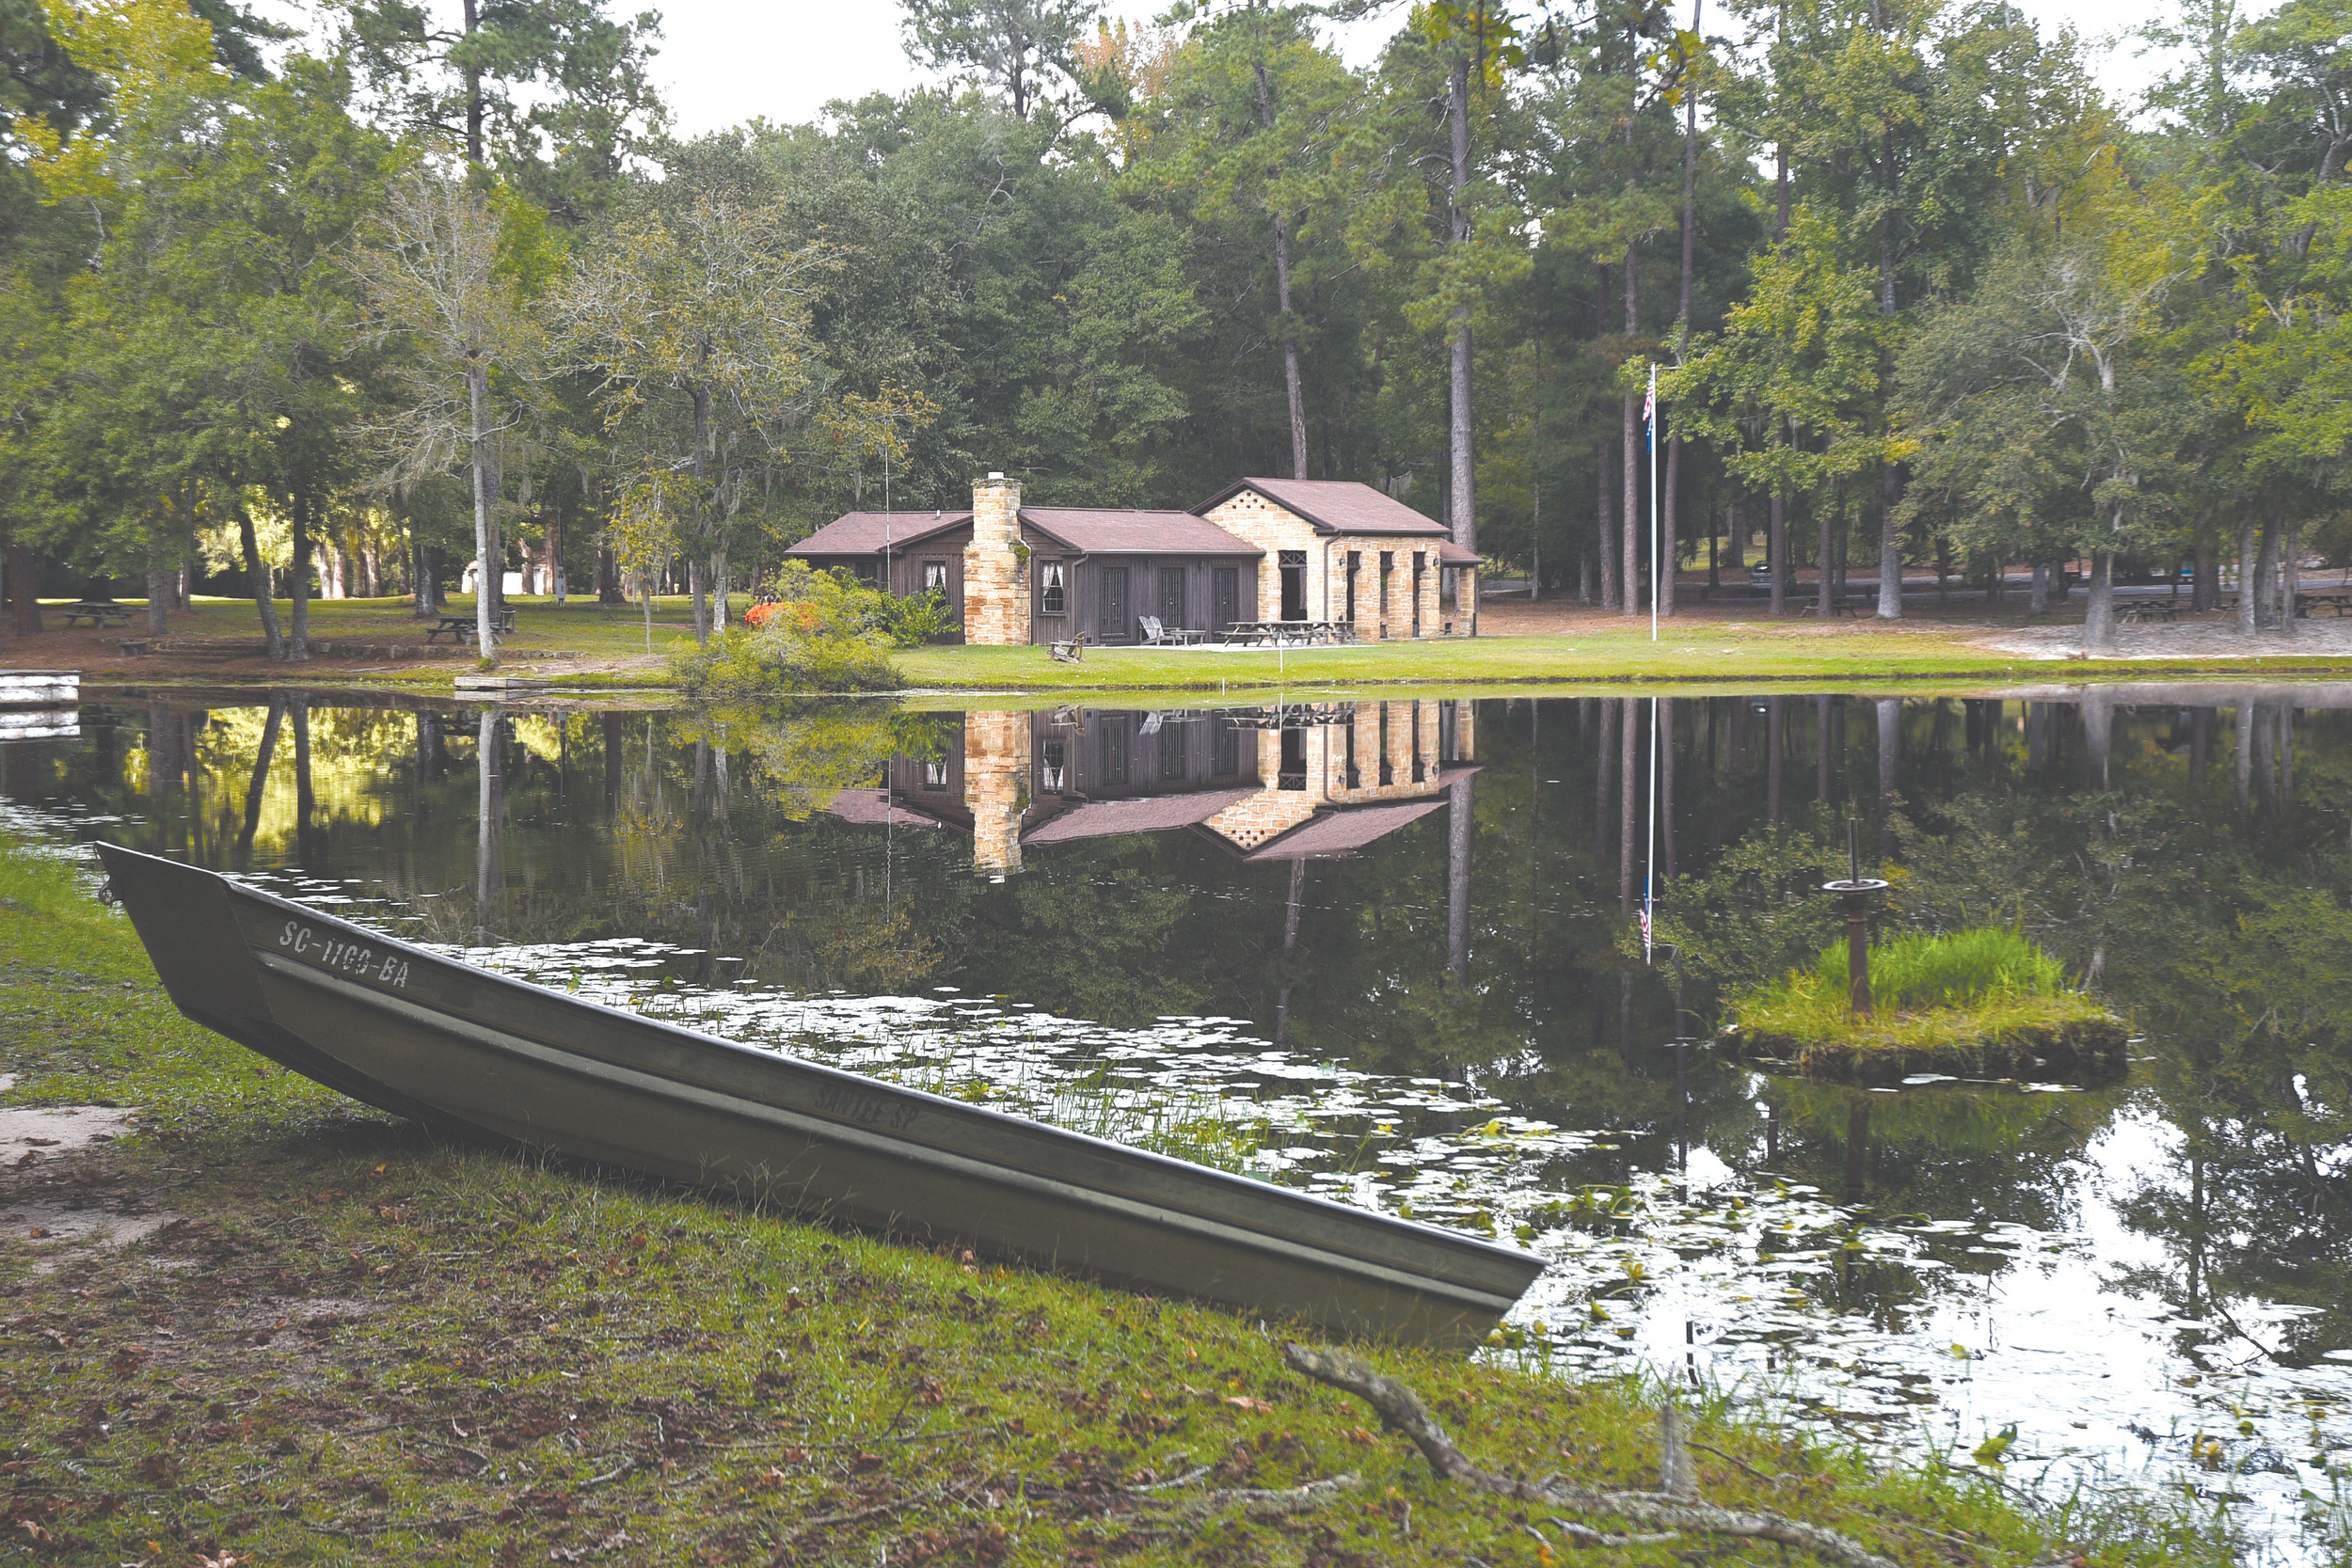 Poinsett State Park is offering a First Day Hike on Jan. 1 from 9 a.m. to 10:30 a.m.